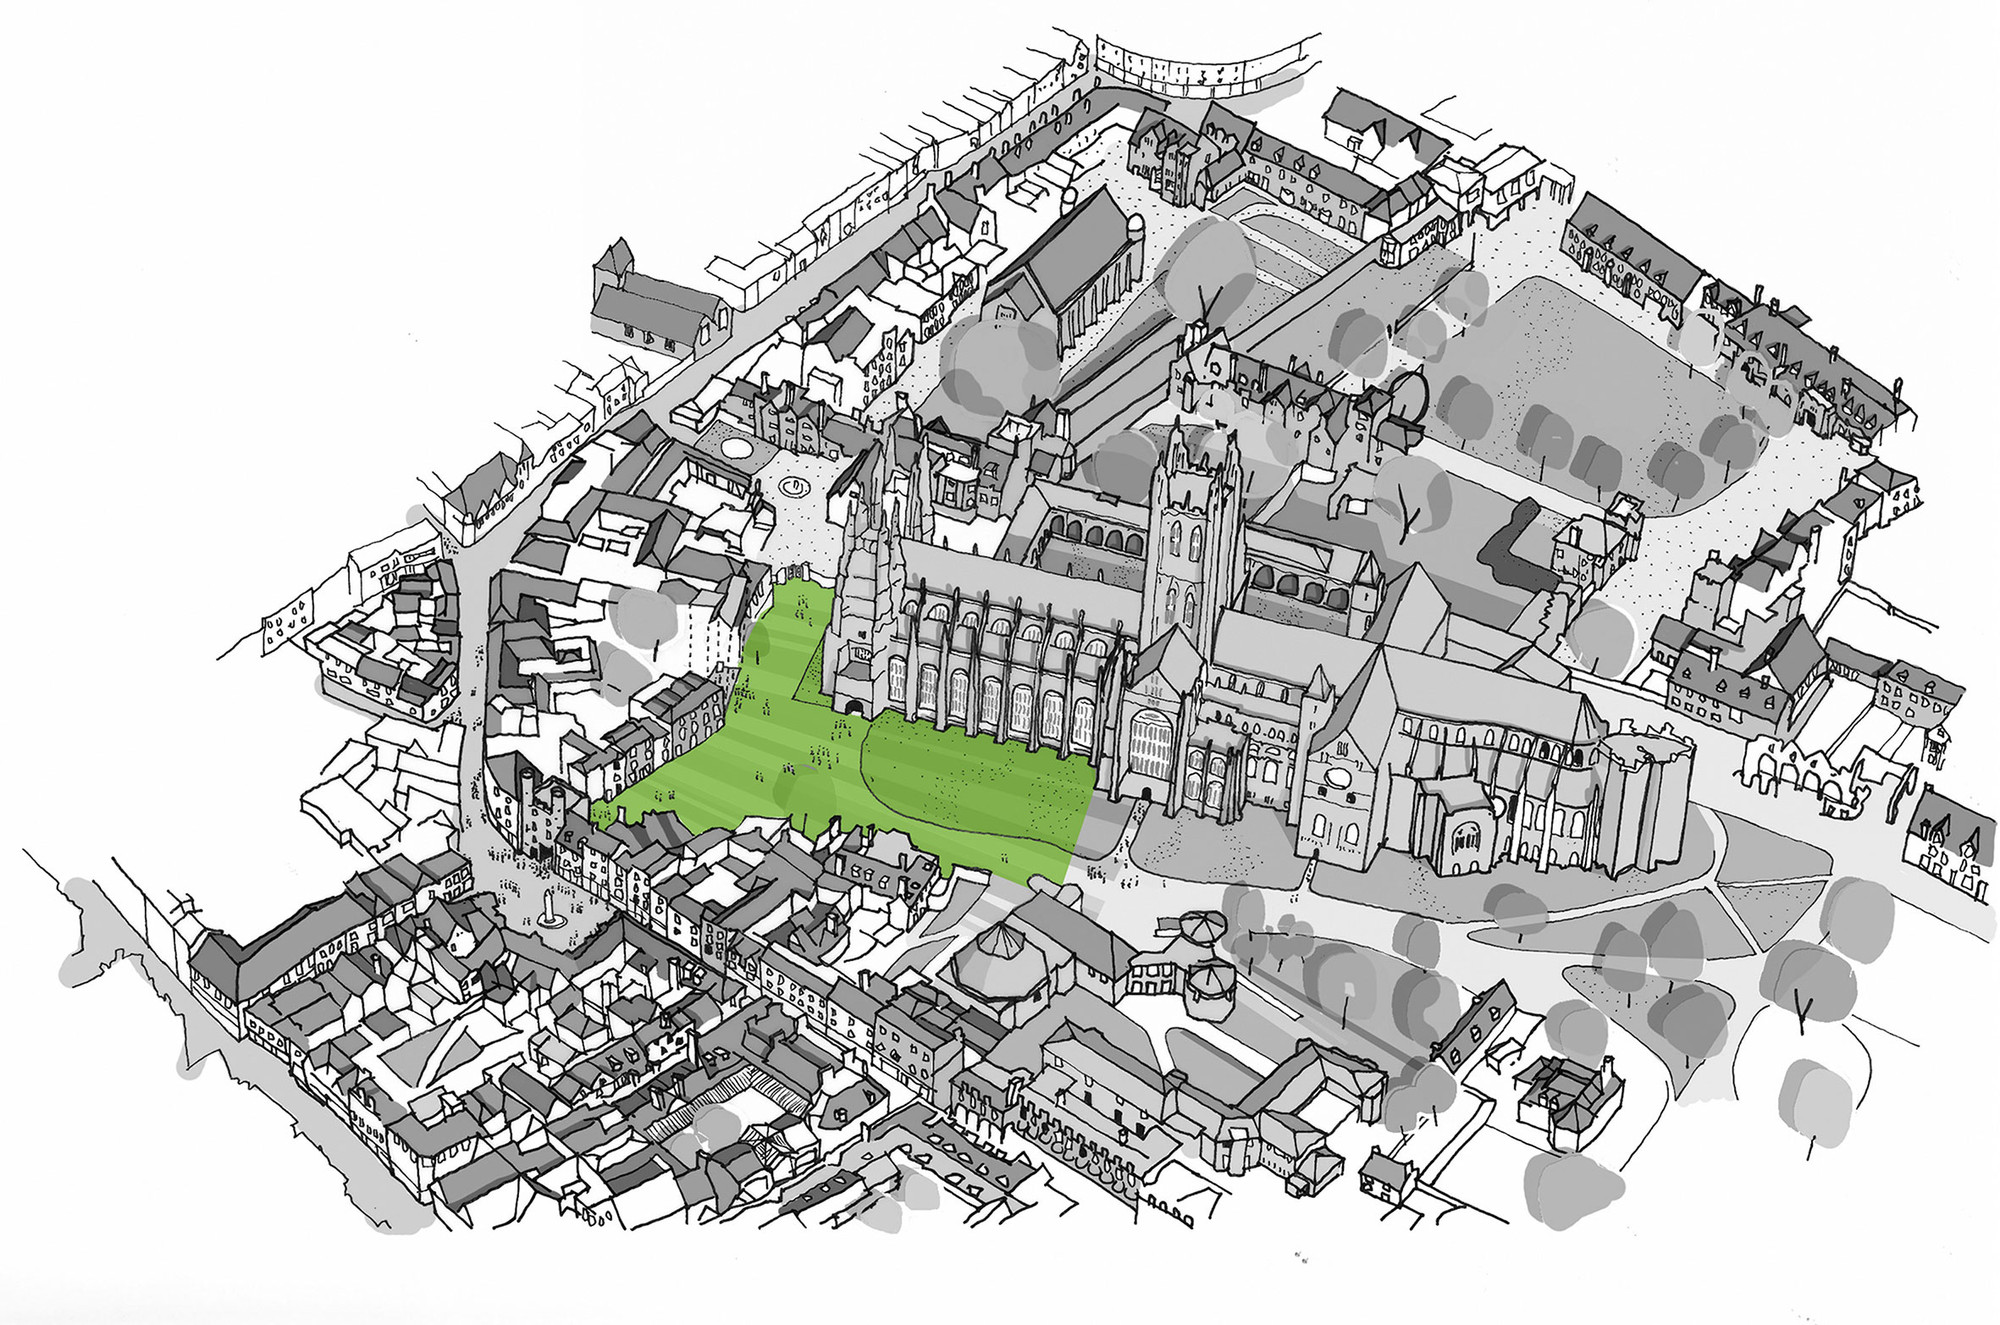 Canterbury Cathedral Landscape Design Competition, Site Plan